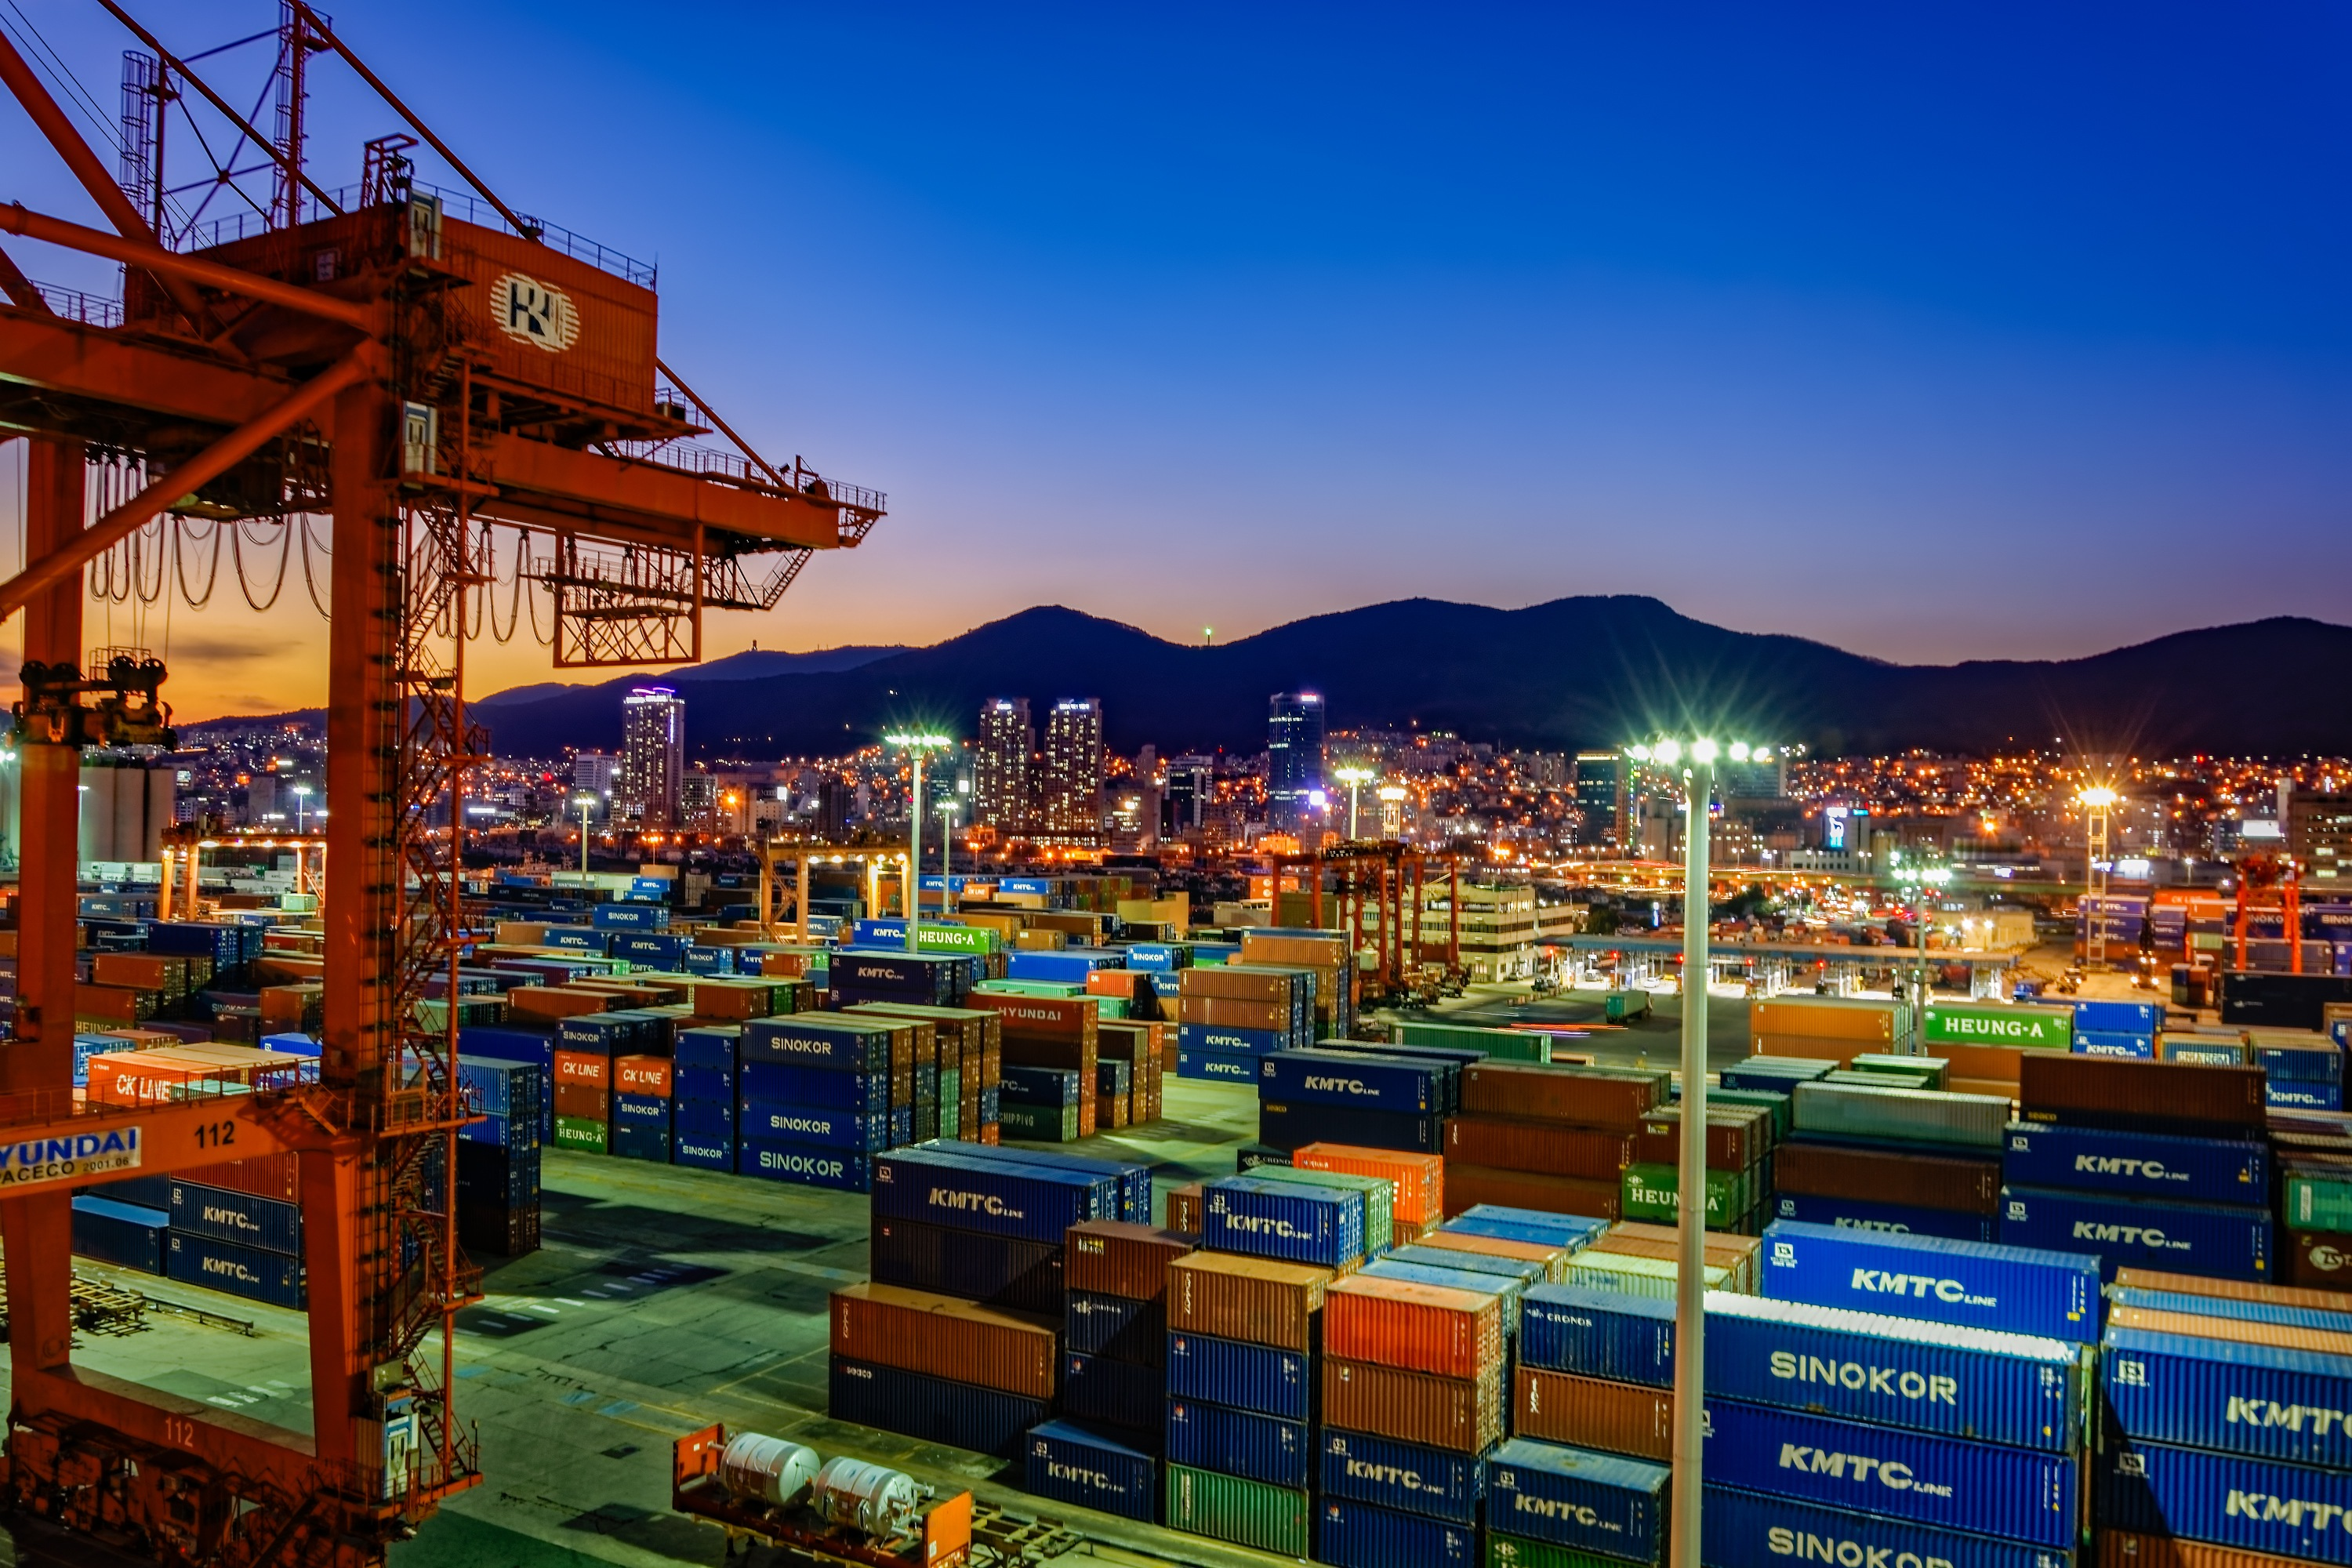 Busan: Night wide angle panorama of cargo vessel in the port of Busan, South Korea, the fifth largest container terminal harbor in the world.